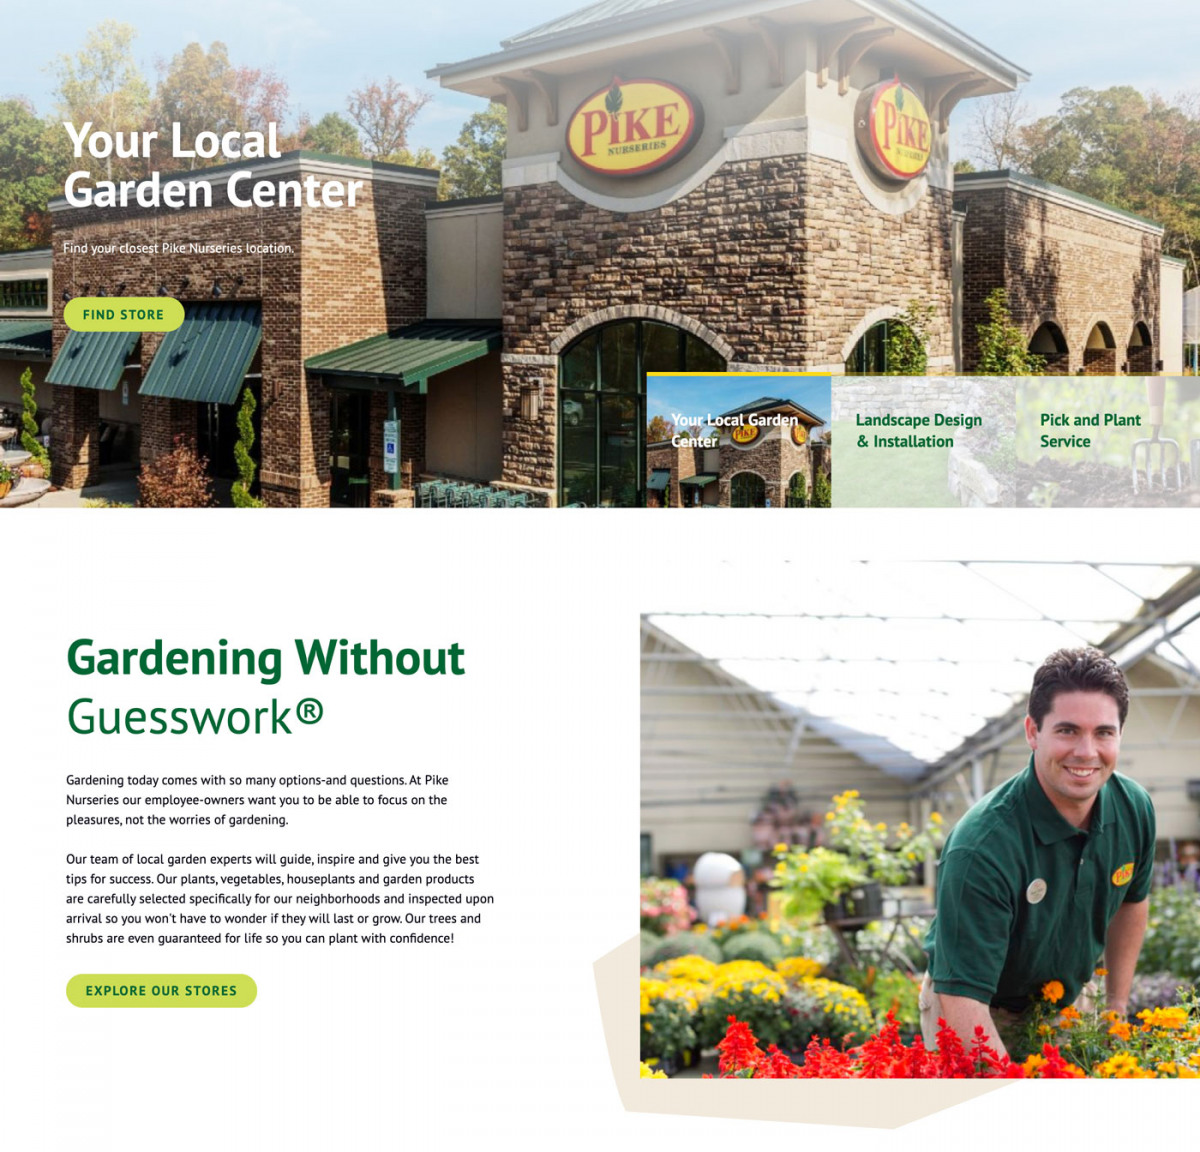 Image of website for Pike Nursery